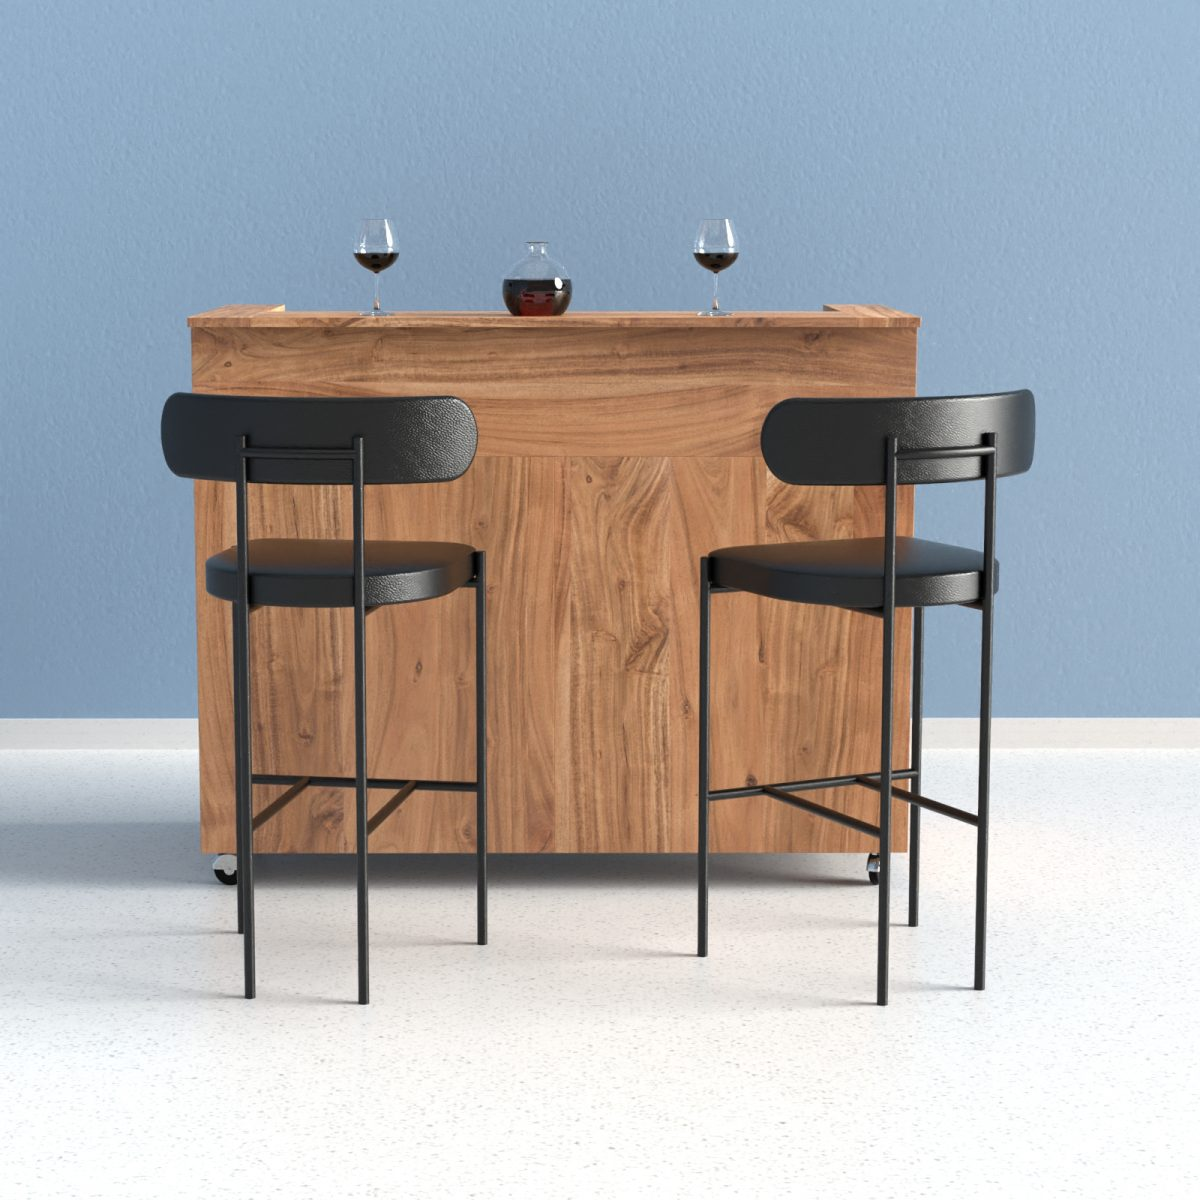 Aultus Bar Counter Homebience Export Wholesale Dropship